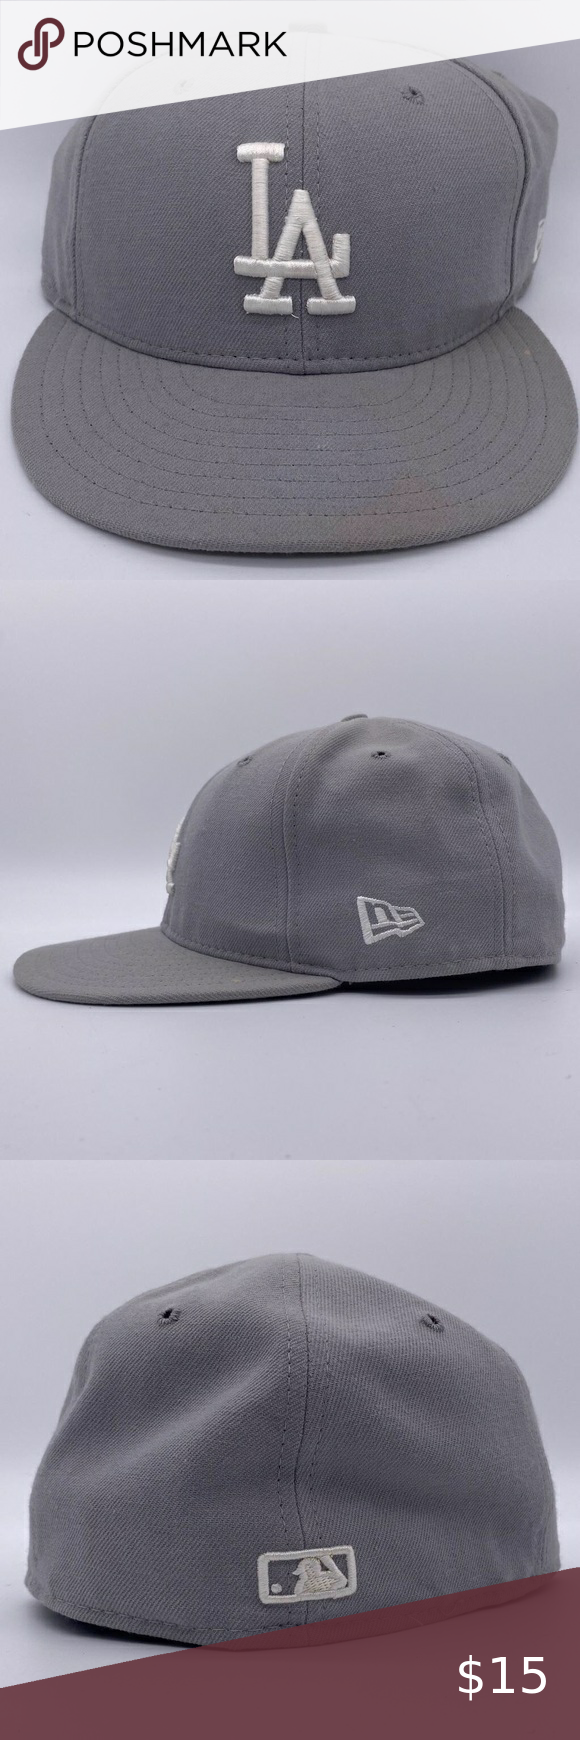 3 For 20 Sale Mlb La Dodgers Fitted Hat 7 1 4 Fitted Hats La Dodgers 20 Sale